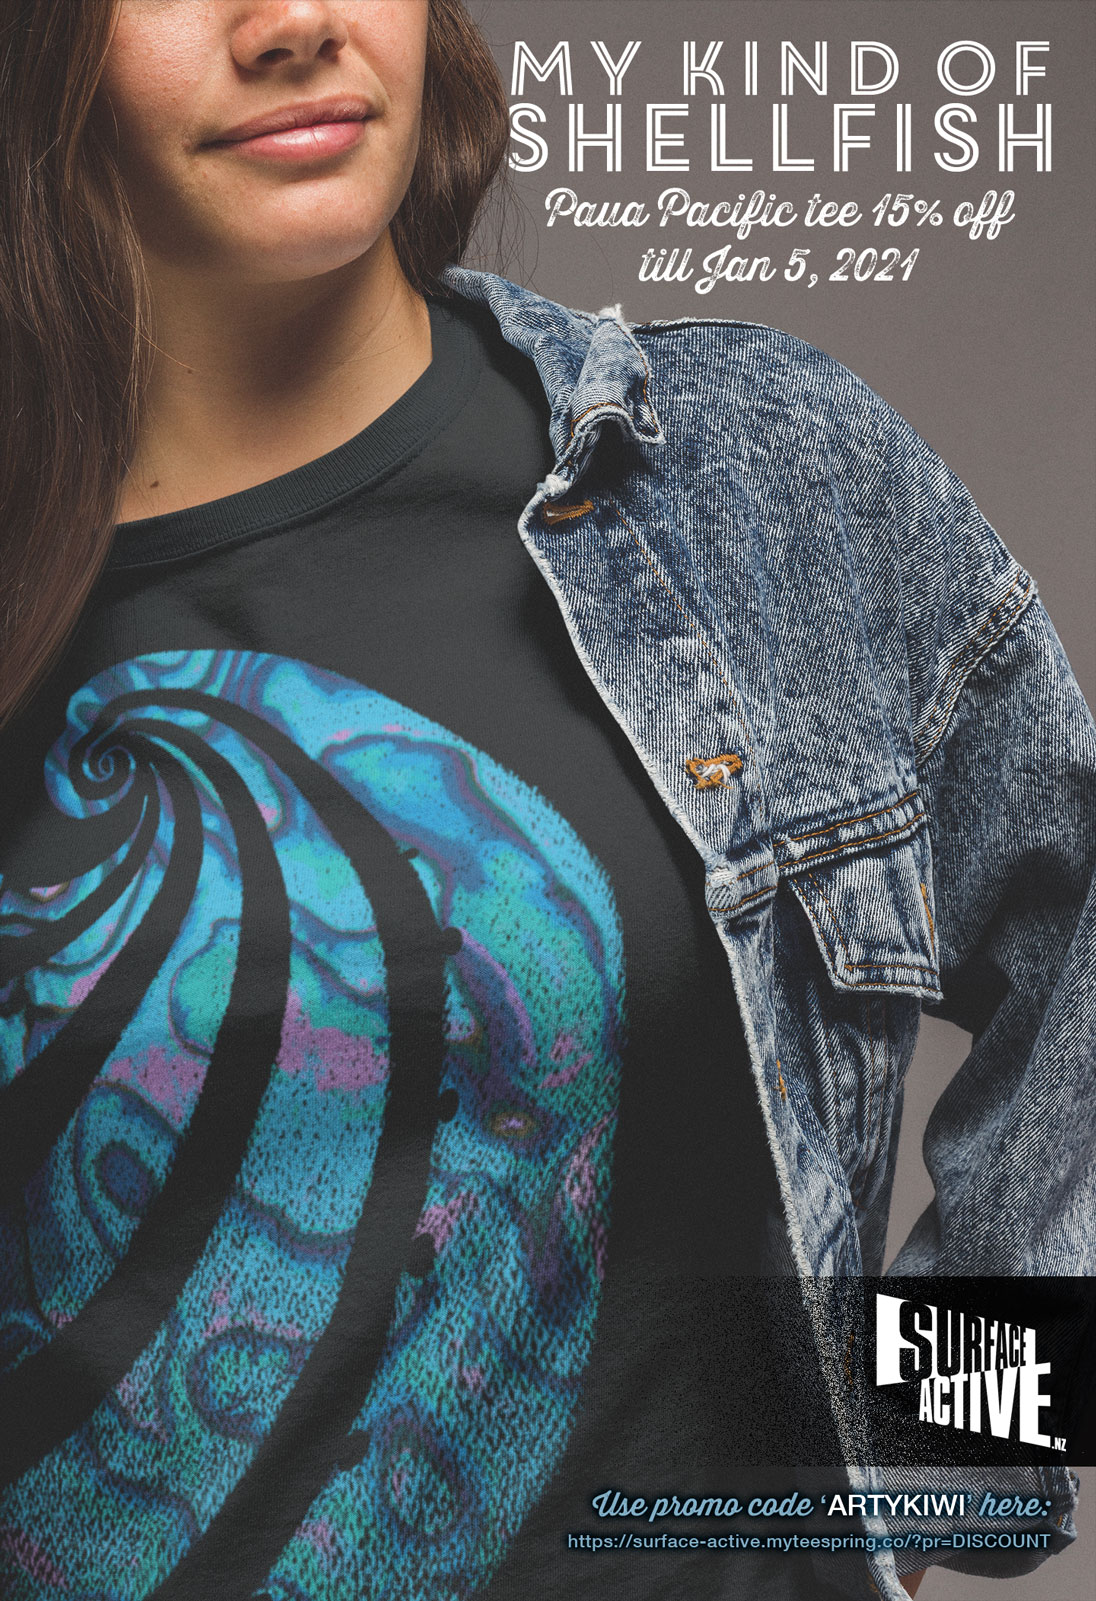 My kind of shellfish. Paua Pacific tee 15% off till Jan 5, 2021. Promotional Facebook Ad for Surface Active New Zealand Artwear T-shirts. Young woman wearing a black paua teeshirt underneath her blue denim jacket.